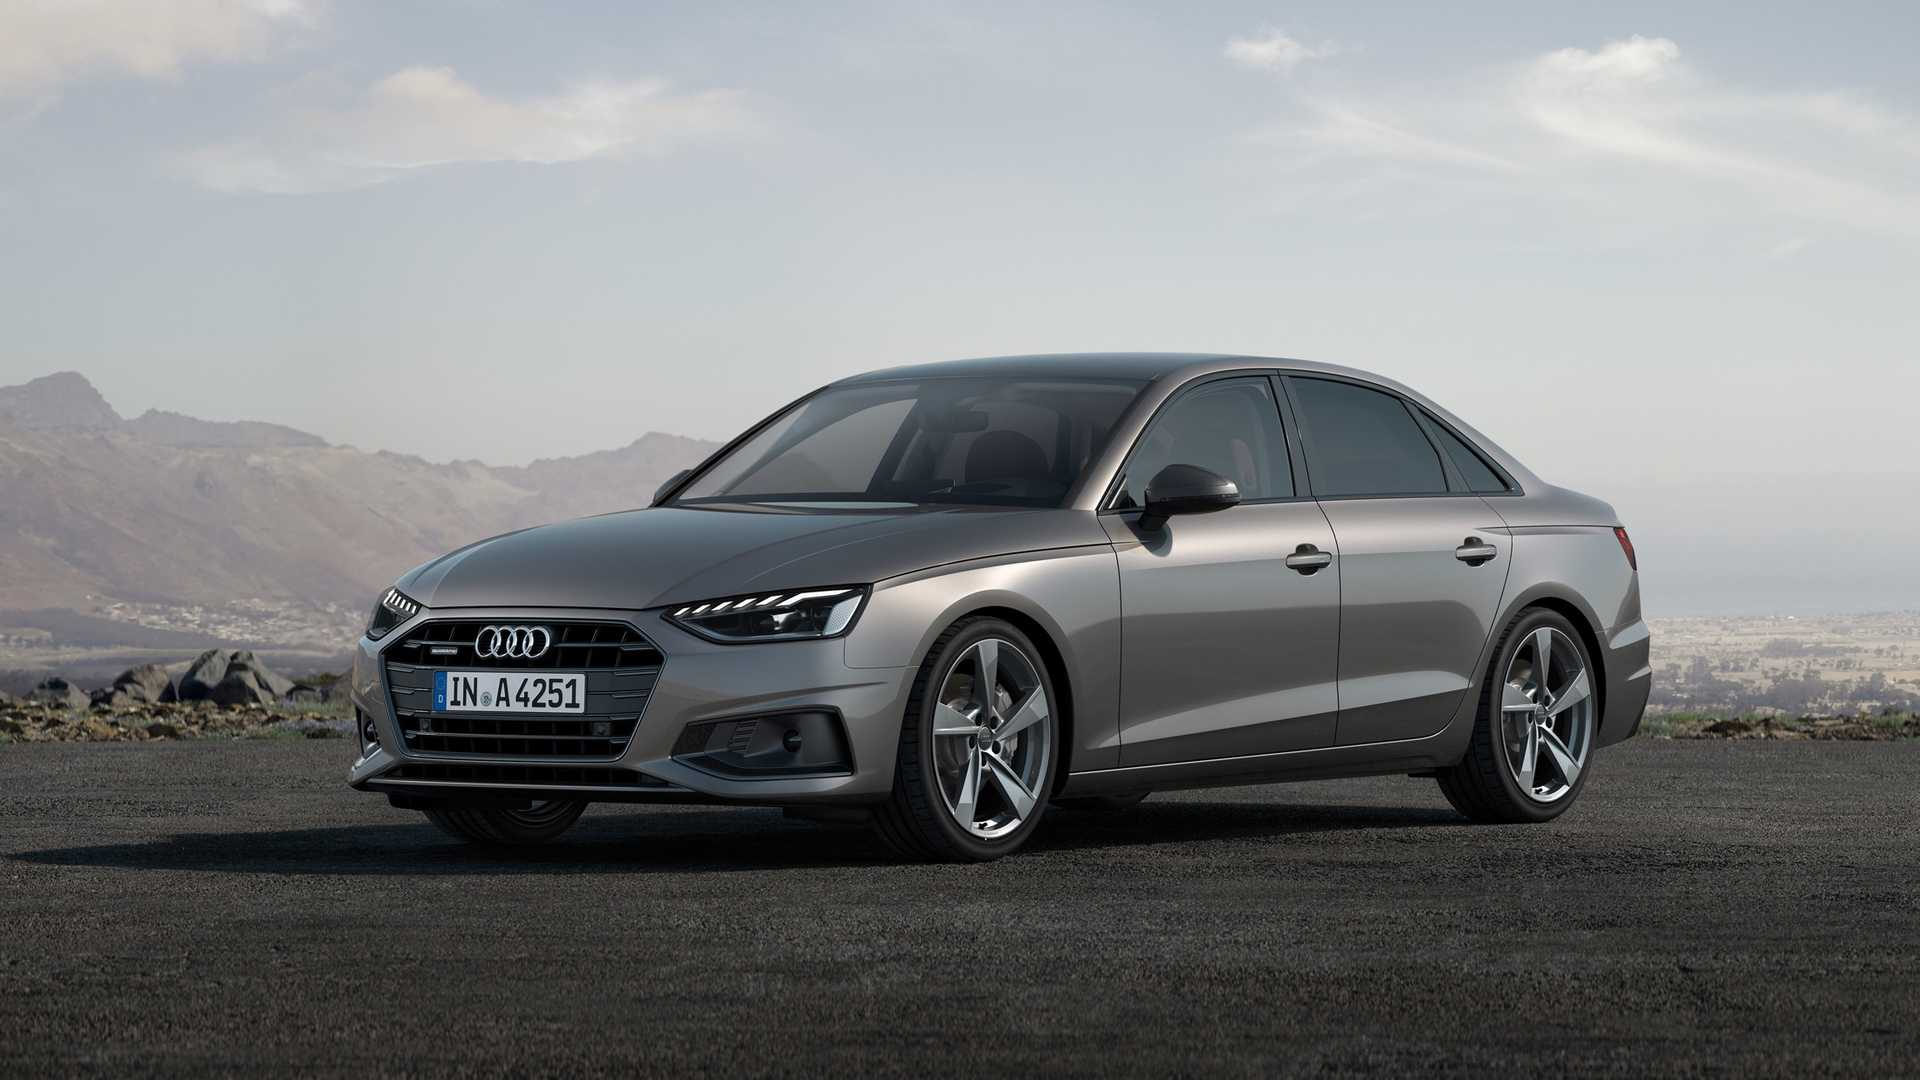 2020 Audi A4 review, behind the scenes of TV's best car show